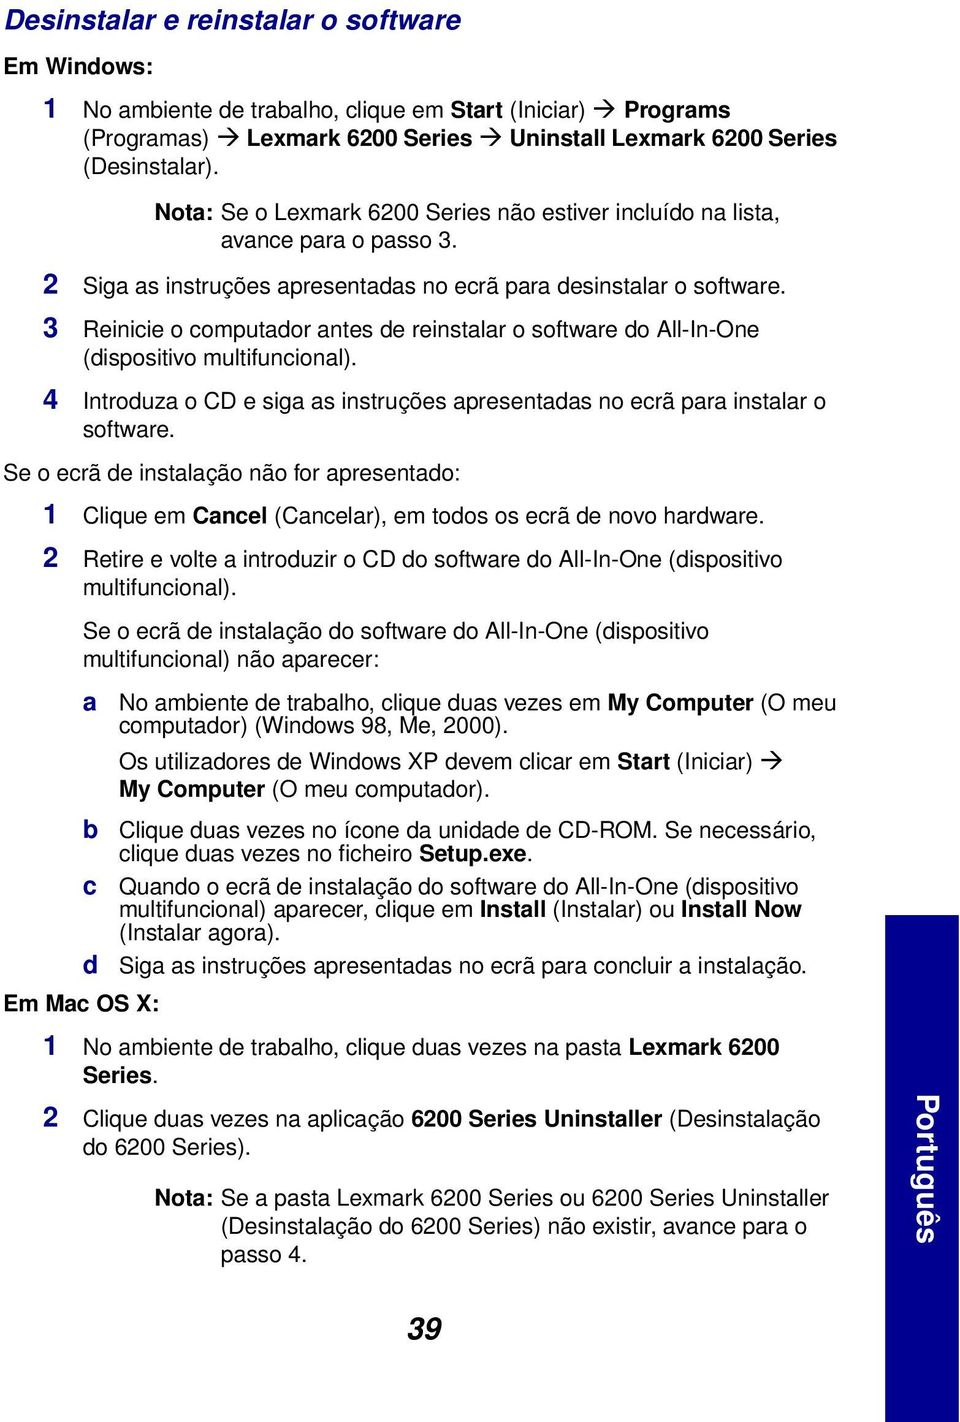 3 Reinicie o computador antes de reinstalar o software do All-In-One (dispositivo multifuncional). 4 Introduza o CD e siga as instruções apresentadas no ecrã para instalar o software.